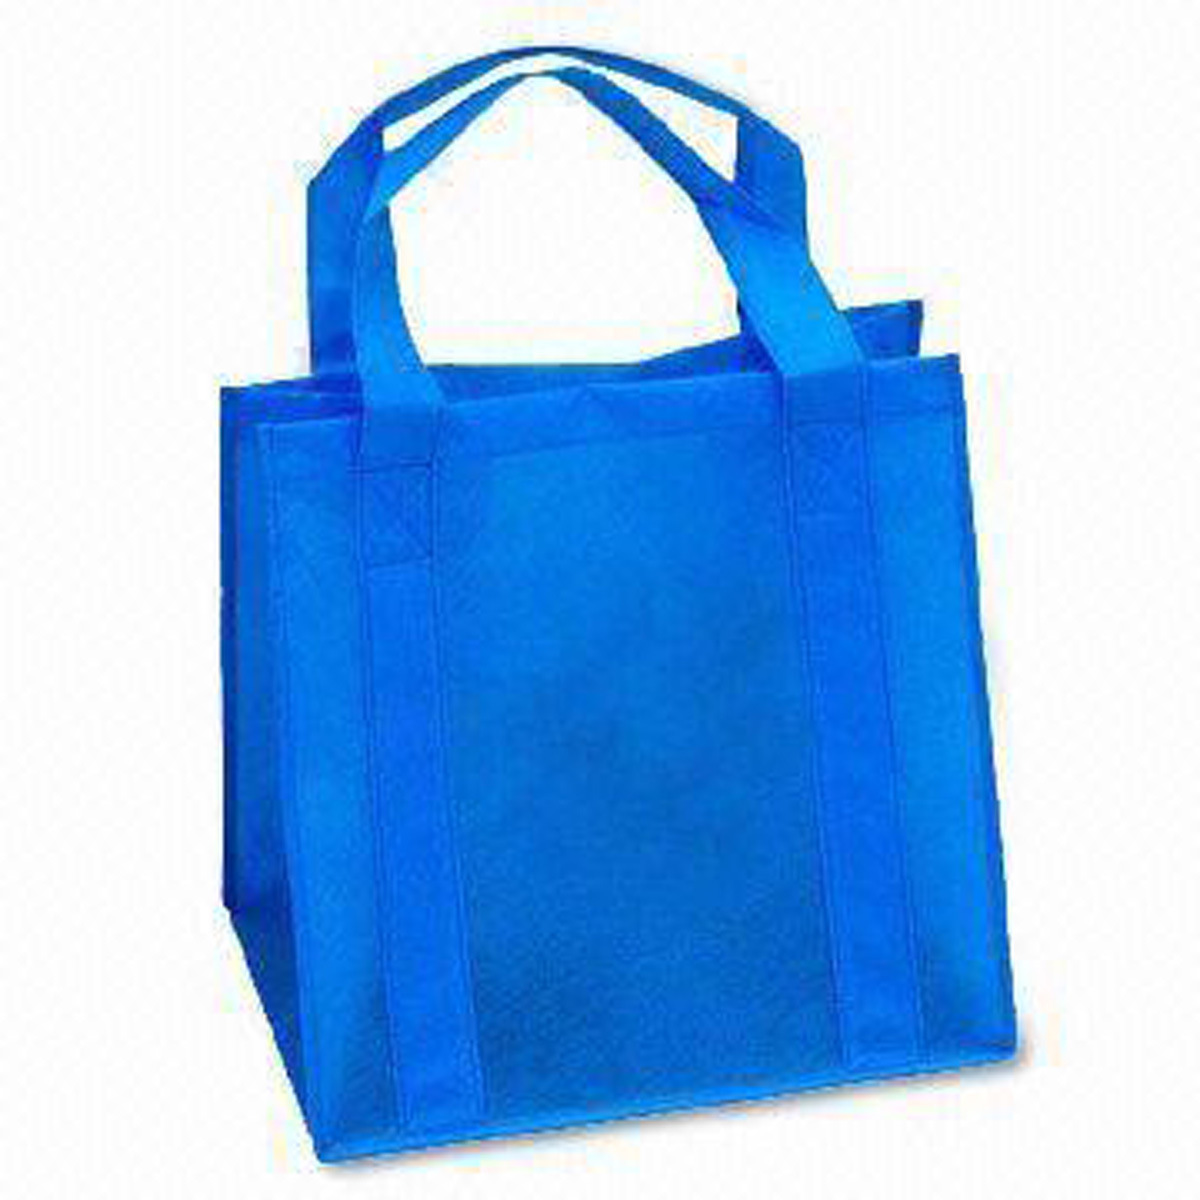 China Recycle Bag - large image for Promotional Non Woven Bags